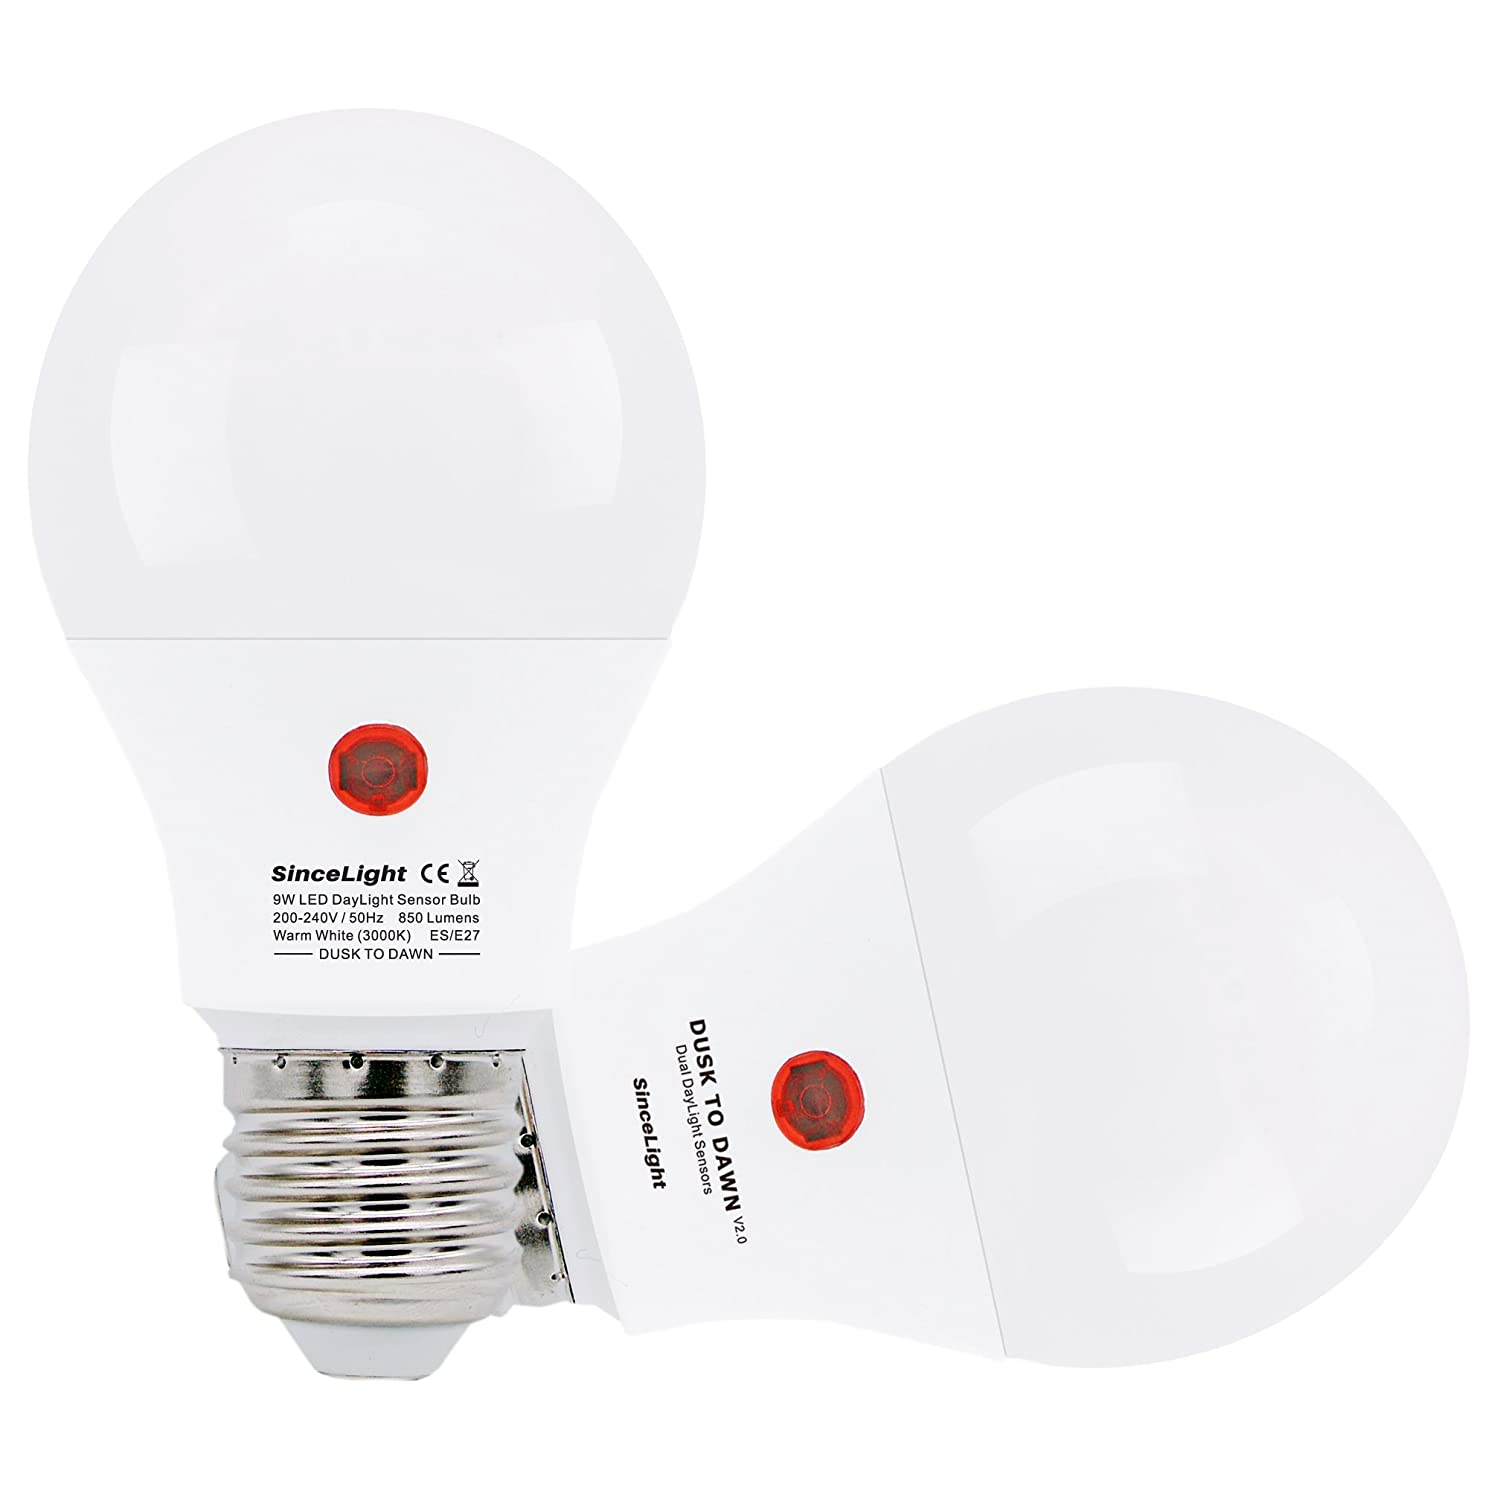 Dusk To Dawn Led Bulb With Dual Daylight Sensors On Off Automatic Circuit 220v Flasher White Flood Lamp Depends Level Night Light From Till 9 Watt 2 Pack 3000k